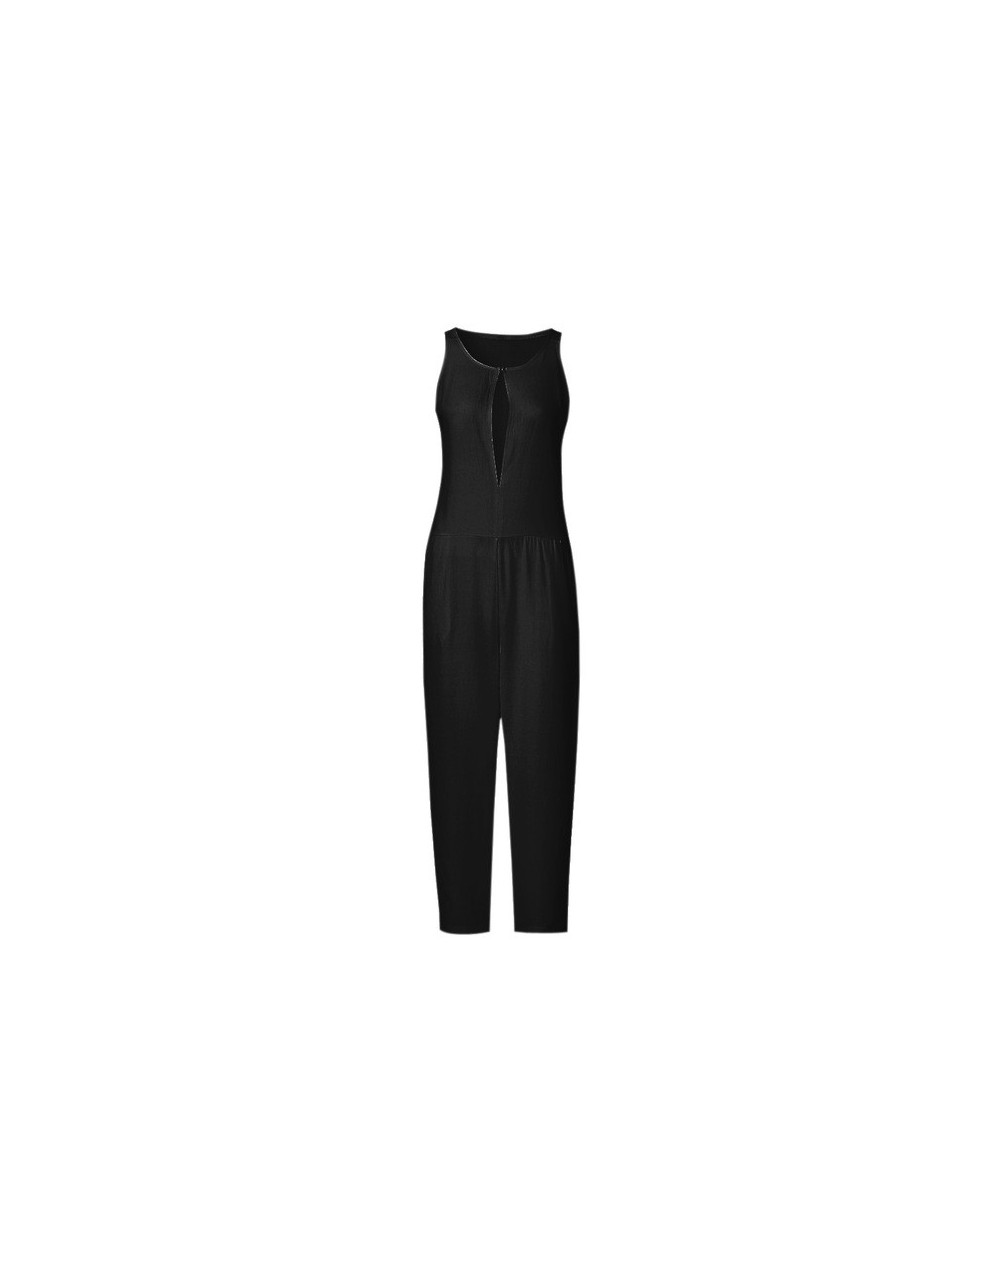 2019 Summer Female Puls Size Elegant Loose Jumpsuit Trousers Women Casual Long Pants Overalls in White Black - Black - 4Z415...